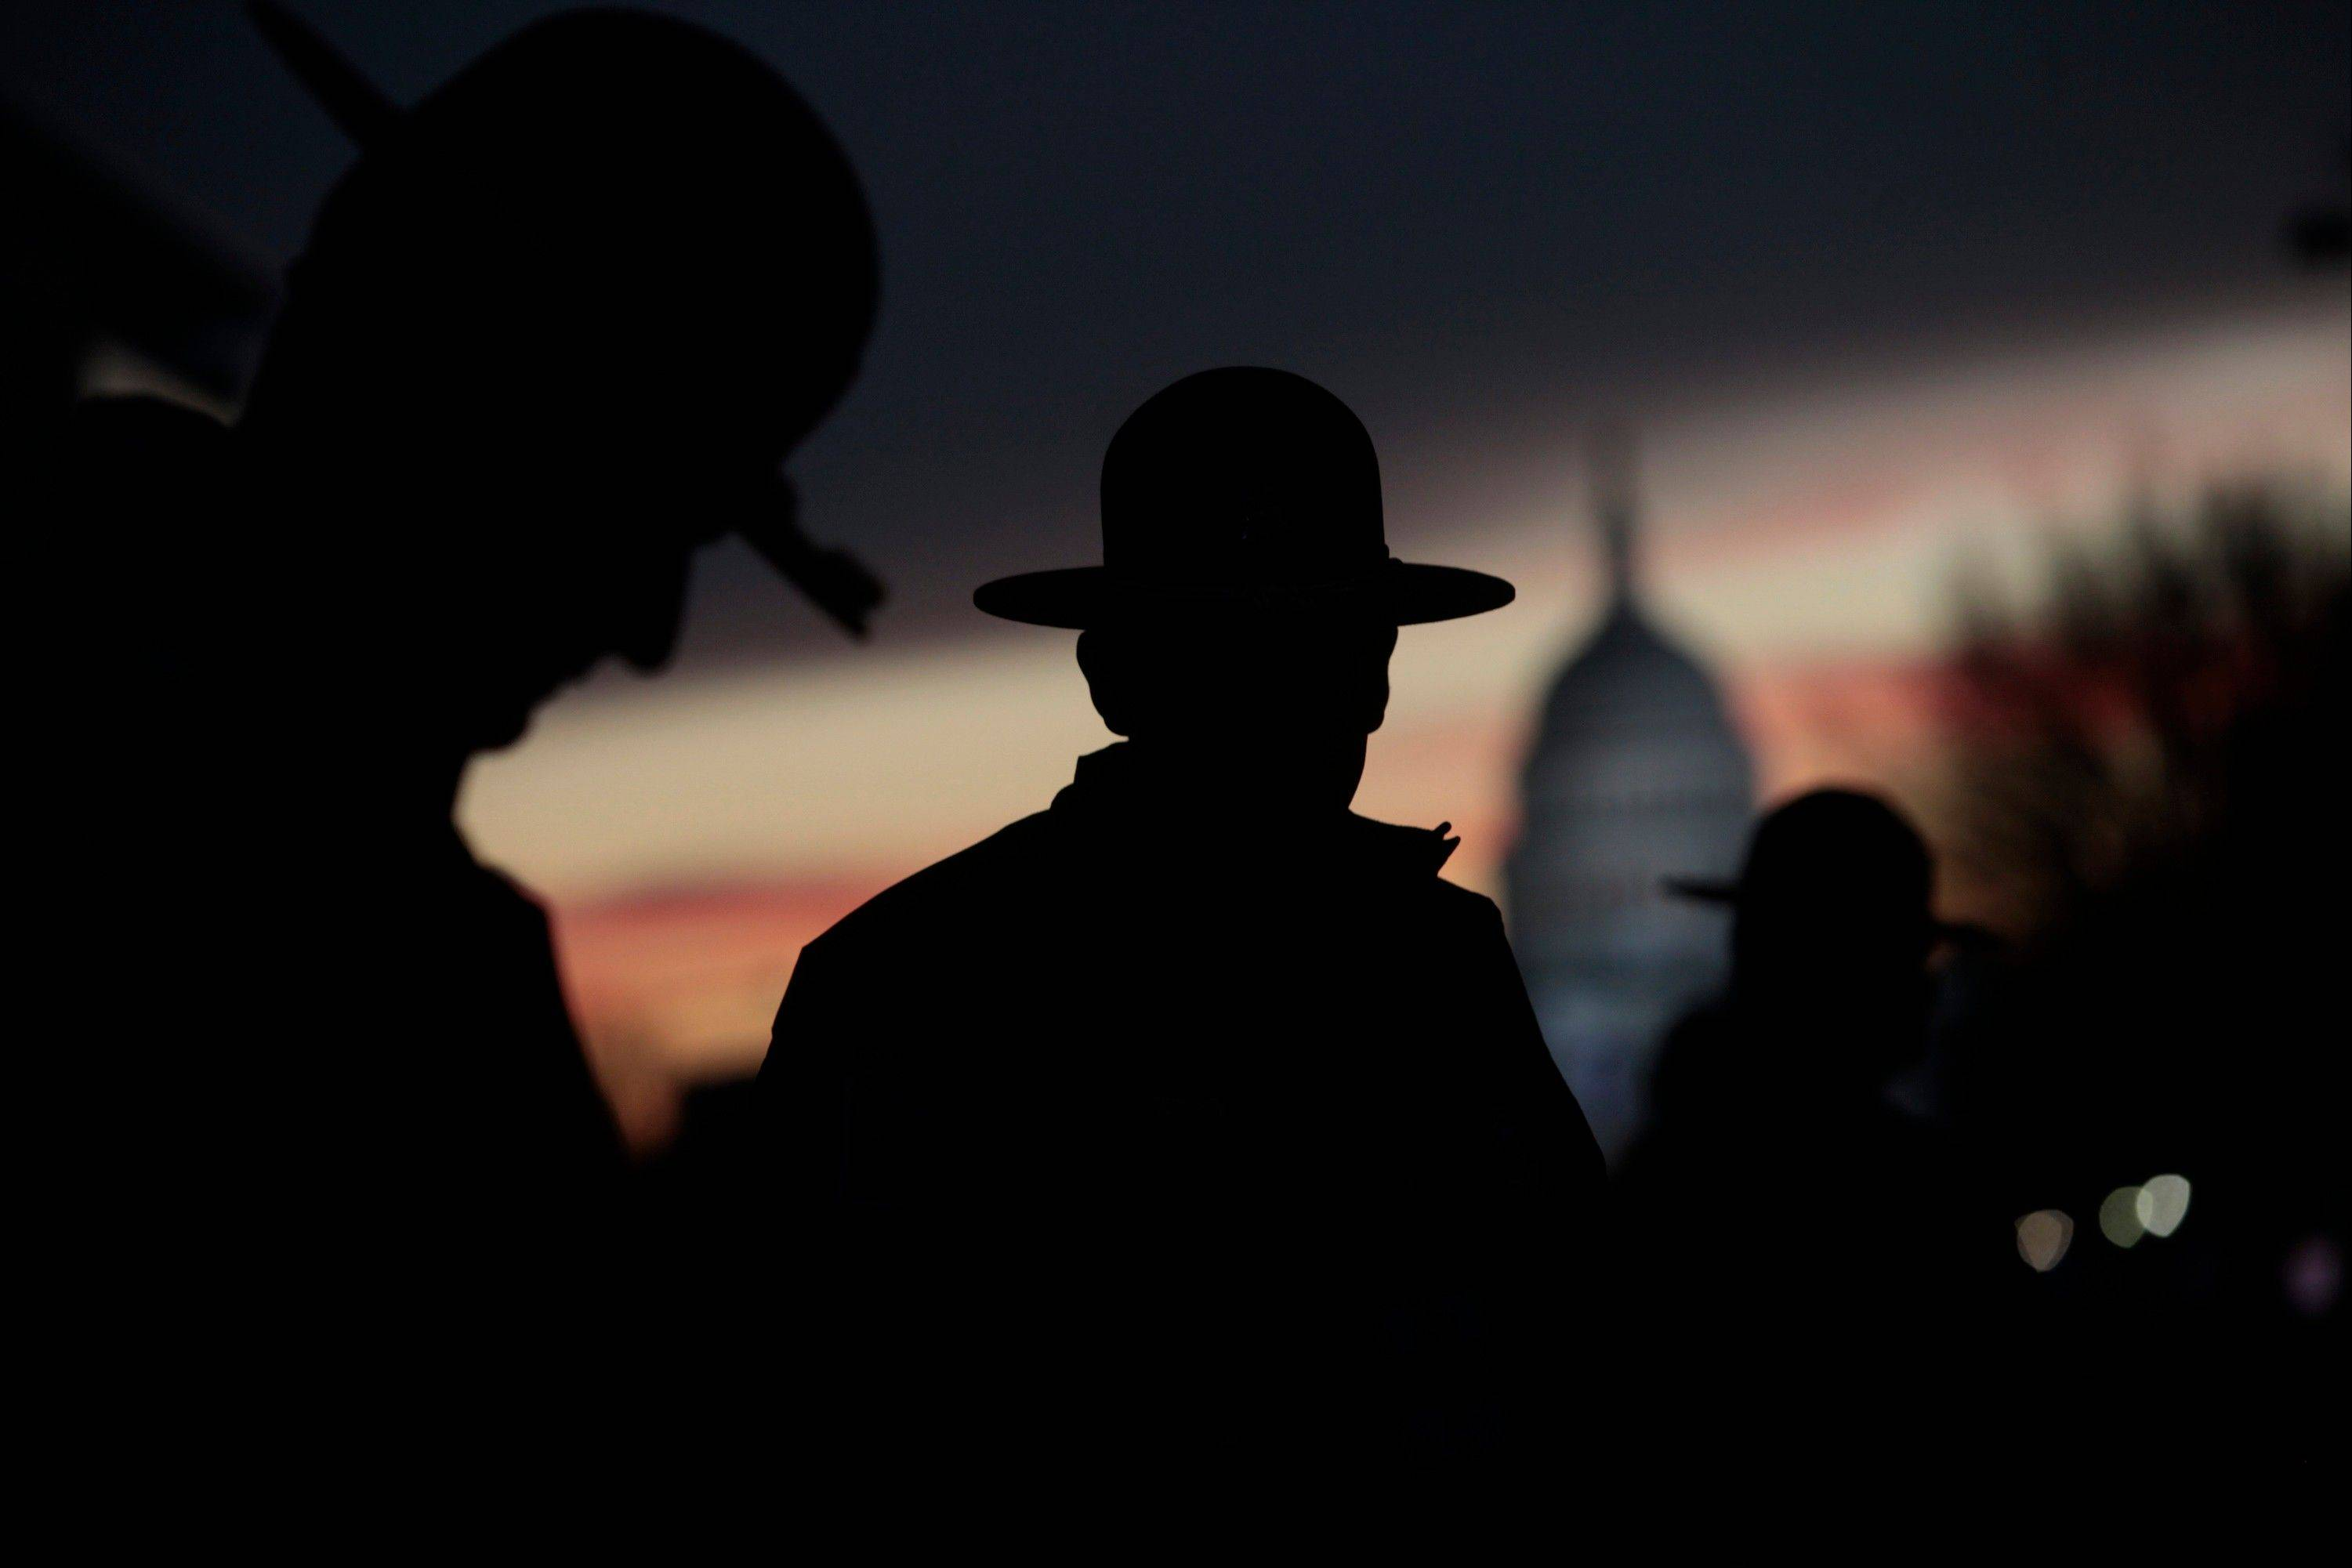 The silhouettes of Minnesota State Troopers are seen as the sun rises before the start of the U.S. presidential inauguration in Washington, D.C., U.S., on Monday, Jan. 21, 2013.